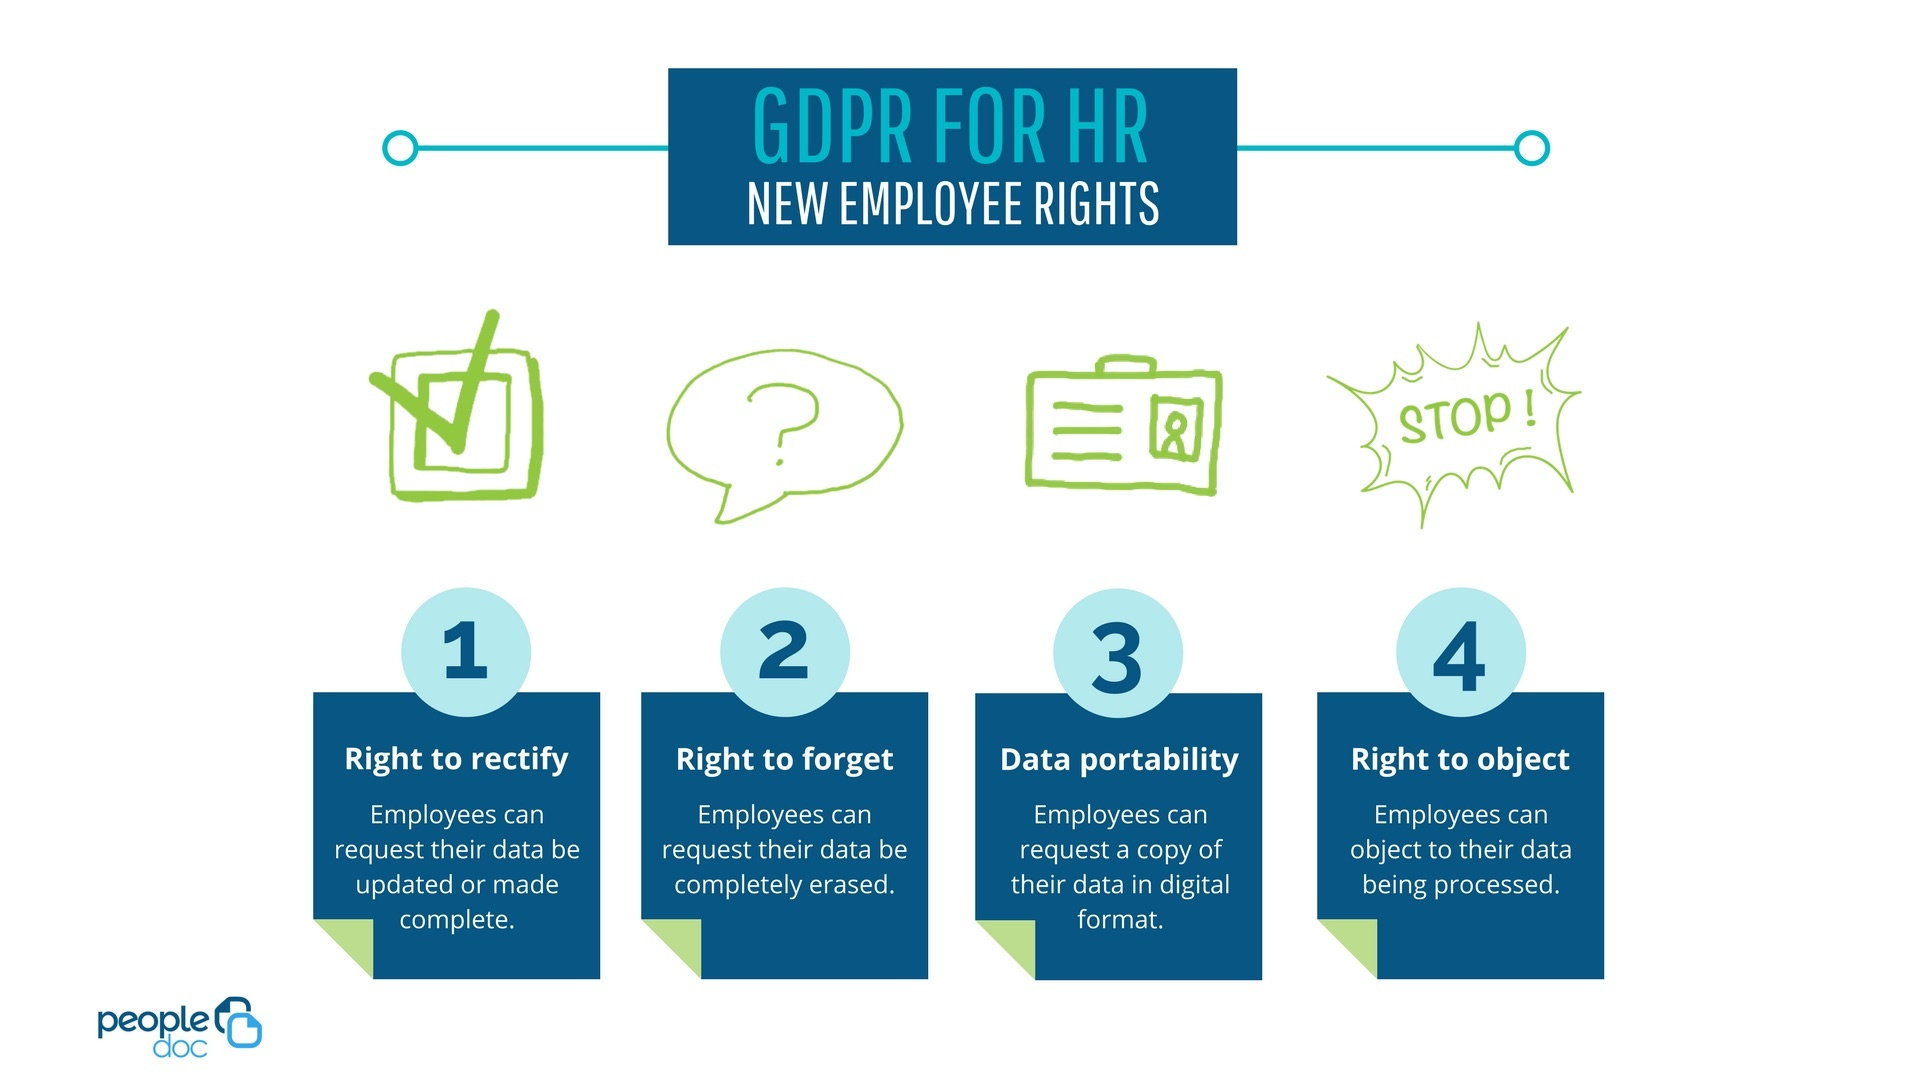 GDPR for HR--The 4 new employee rights: Right to rectify, right to forget, data portability, and right to object.